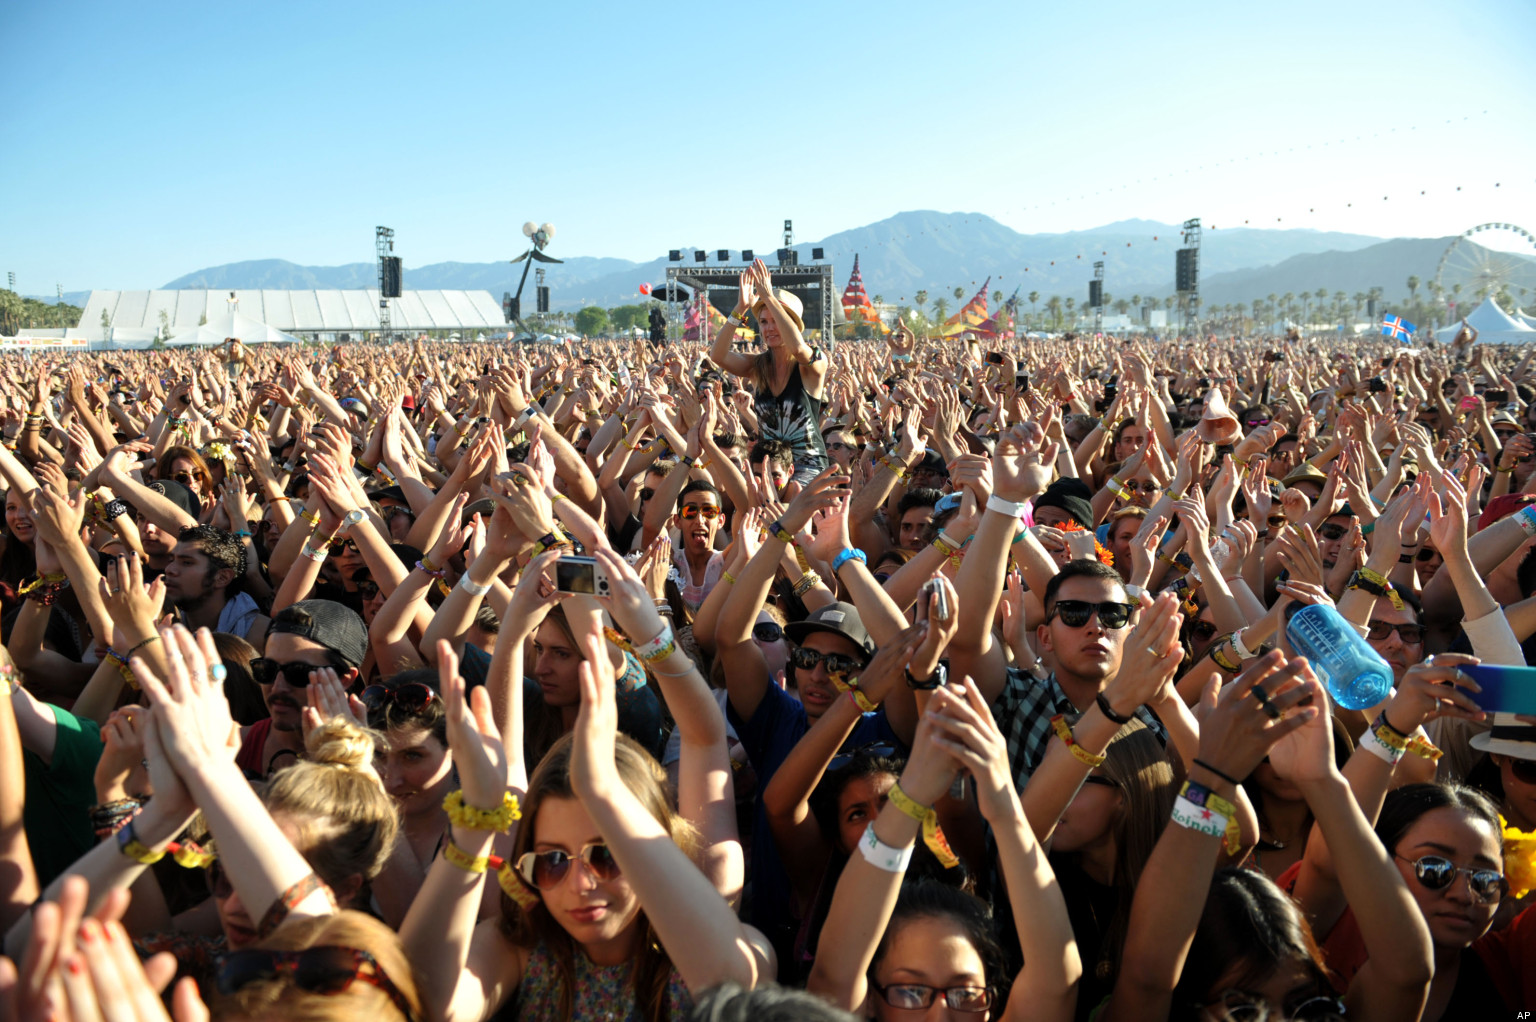 Enjoy Coachella from the comfort of your own couch